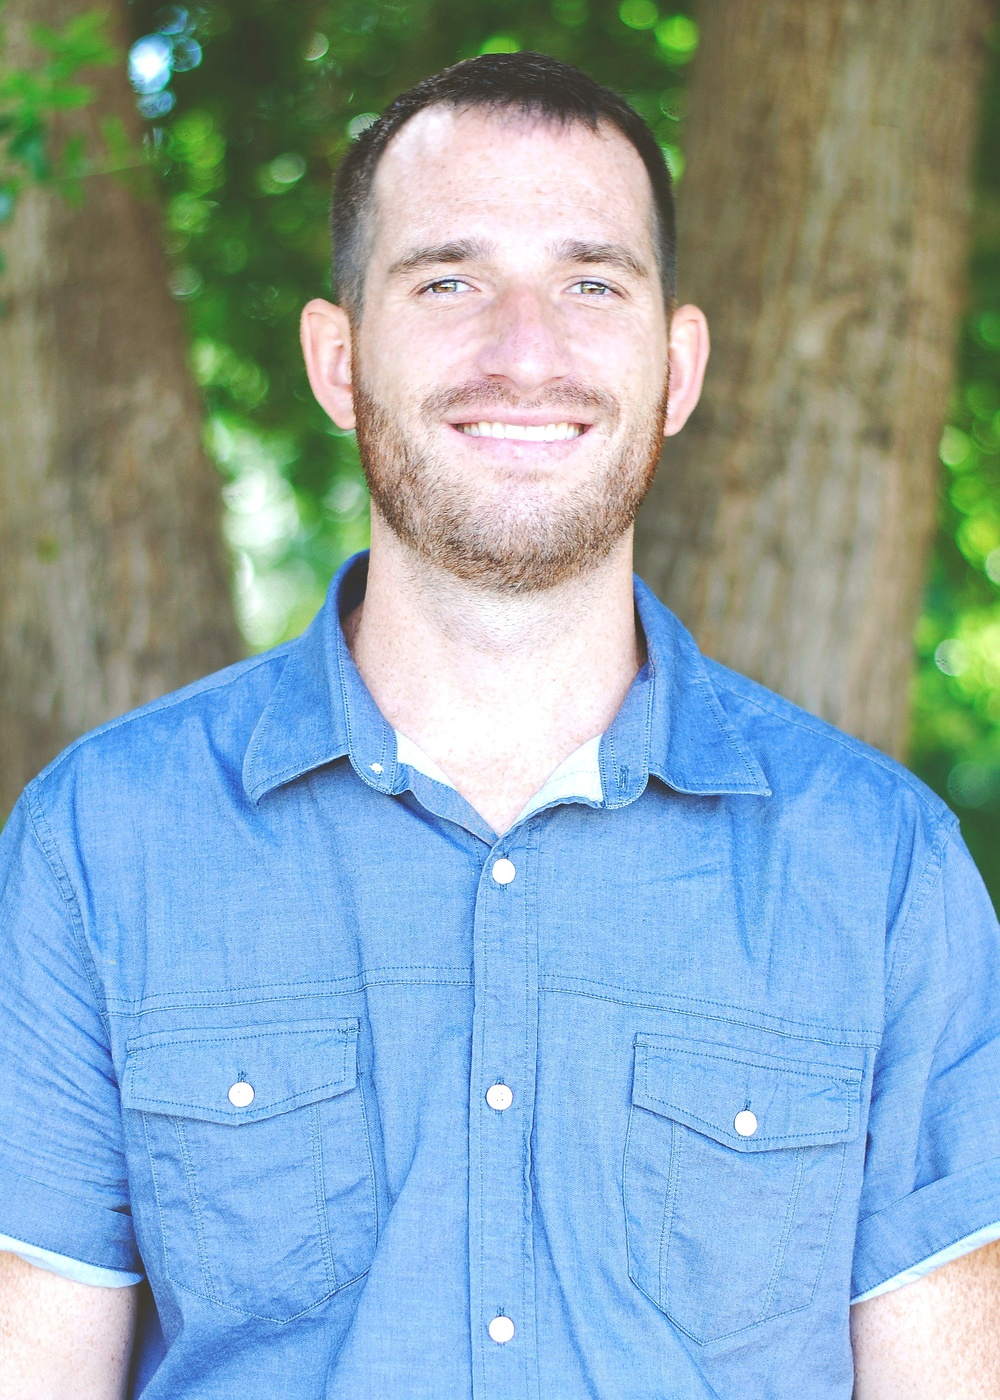 Josh has been serving in student ministry for over 9 years. He is currently the pastor to students at Church @ the Springs in Ocala, Florida. [read more]